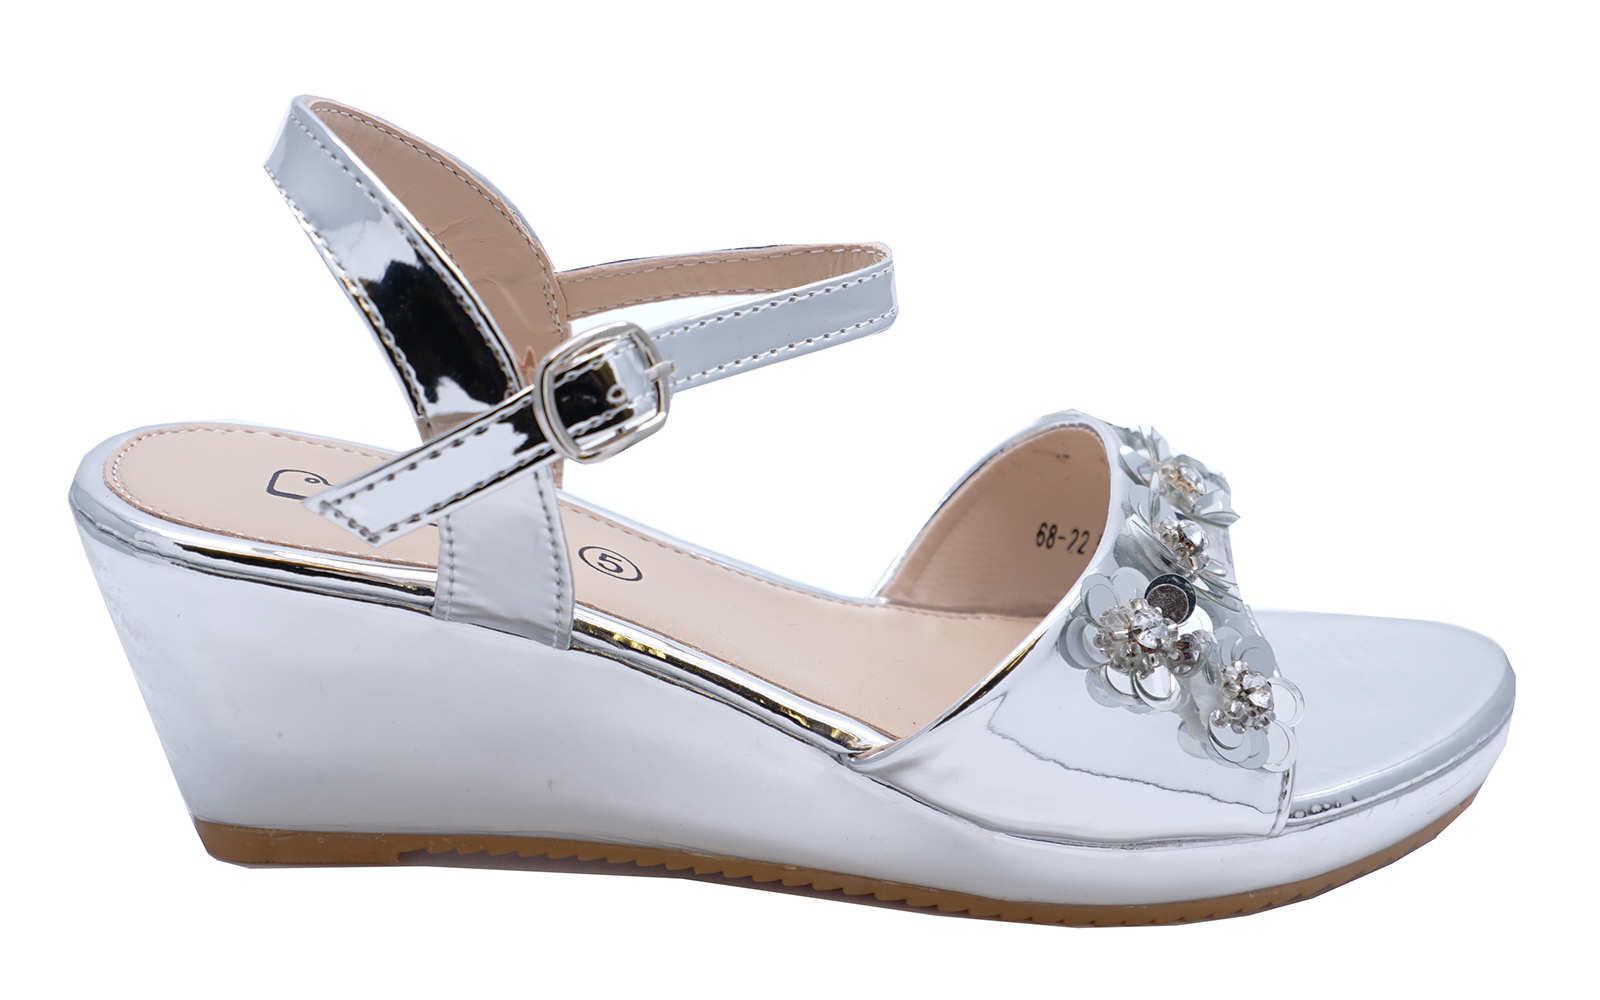 4a64580f1b7 Sentinel LADIES GIRLS SILVER WEDGES OPEN-TOE FLOWER BRIDESMAID WEDDING SHOES  UK 3-8